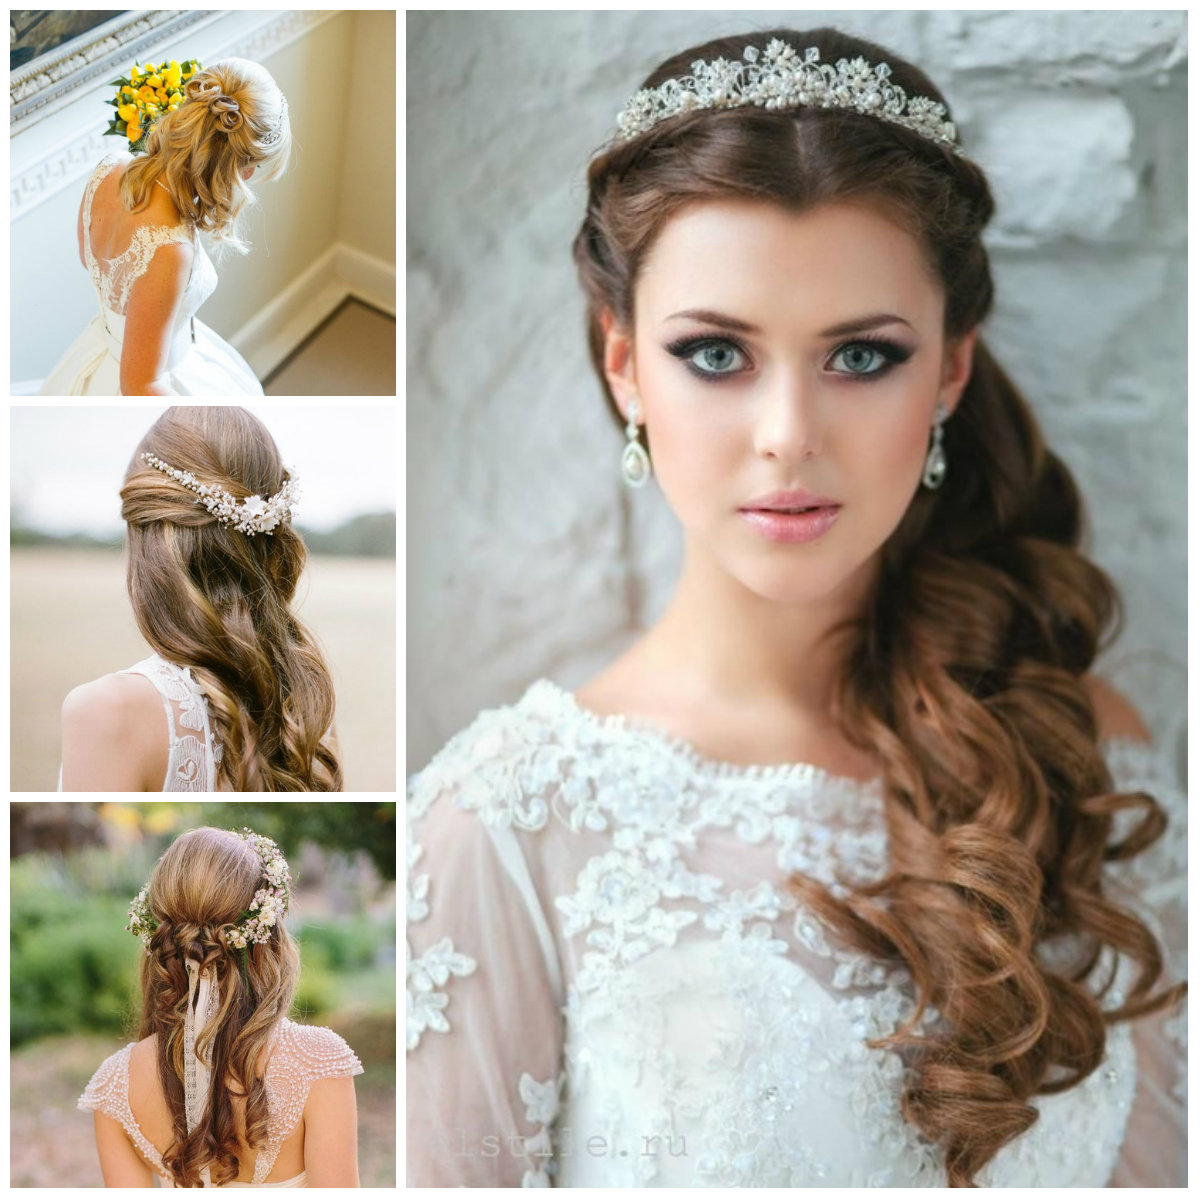 Wedding Hairstyle Trends 2019: Half Up Half Down Hairstyle